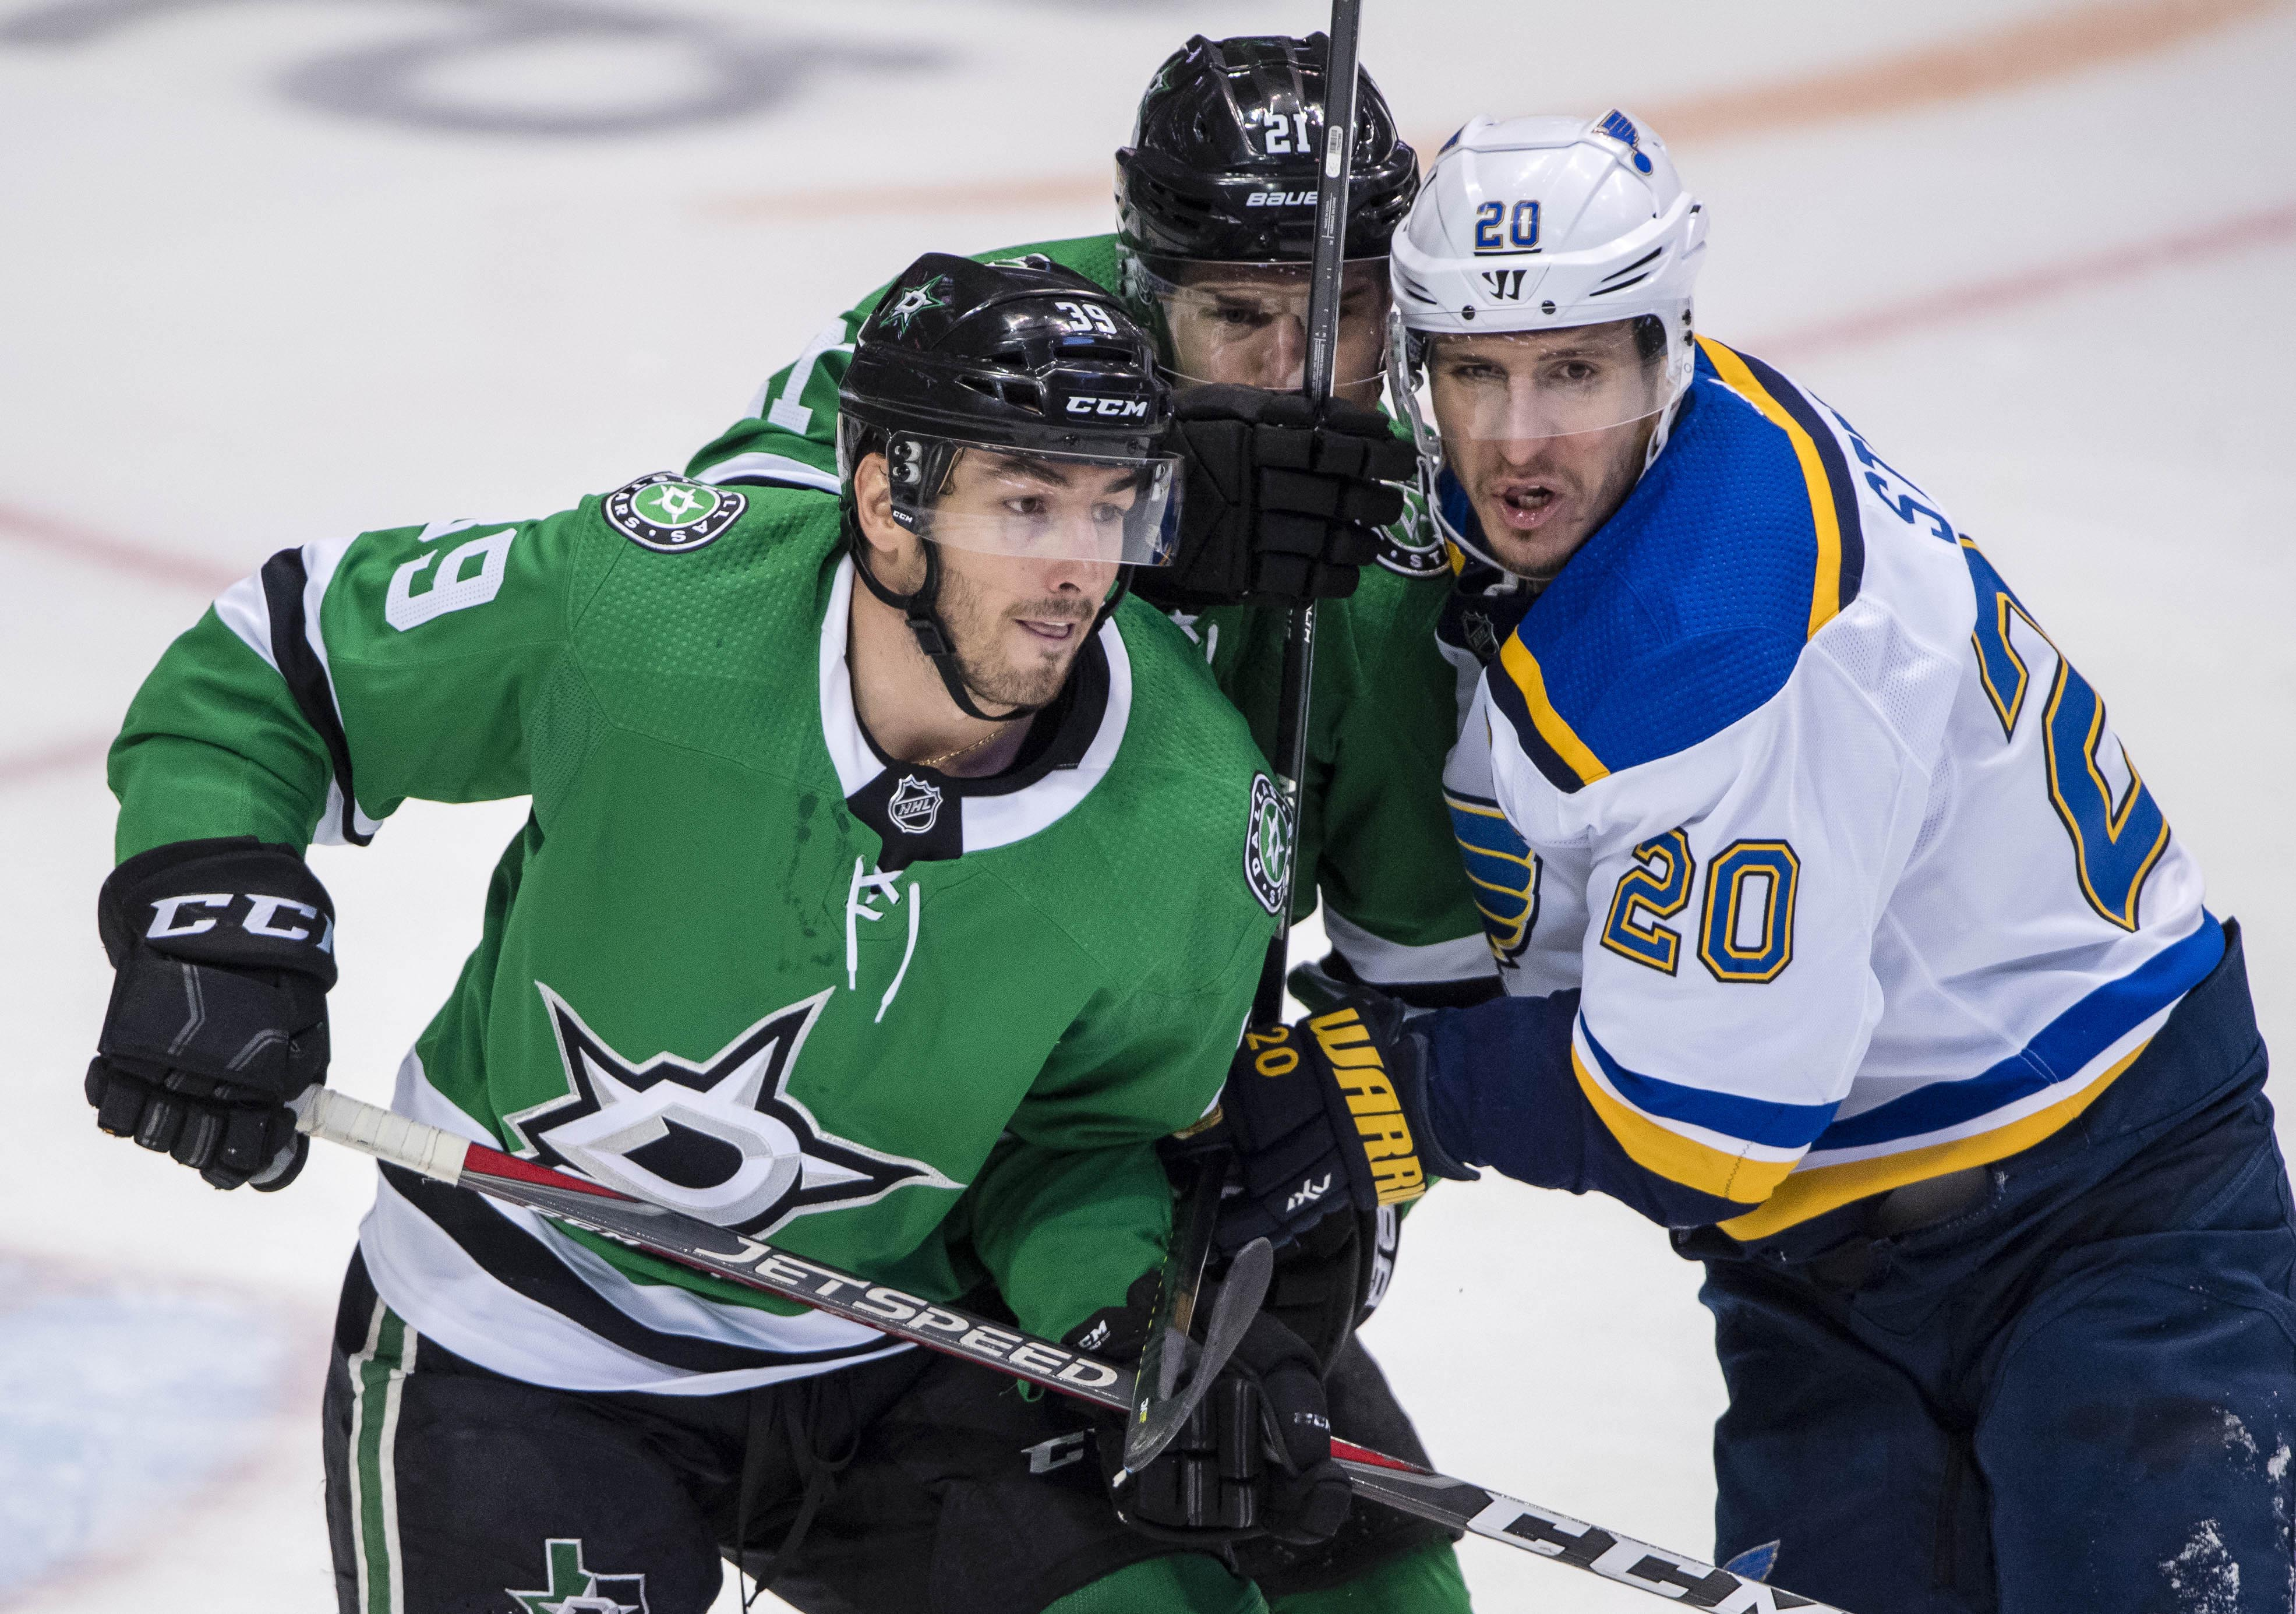 May 1, 2019; Dallas, TX, USA; Dallas Stars defenseman Joel Hanley (39) and defenseman Ben Lovejoy (21) defend against St. Louis Blues left wing Alexander Steen (20) during the third period in game four of the second round of the 2019 Stanley Cup Playoffs